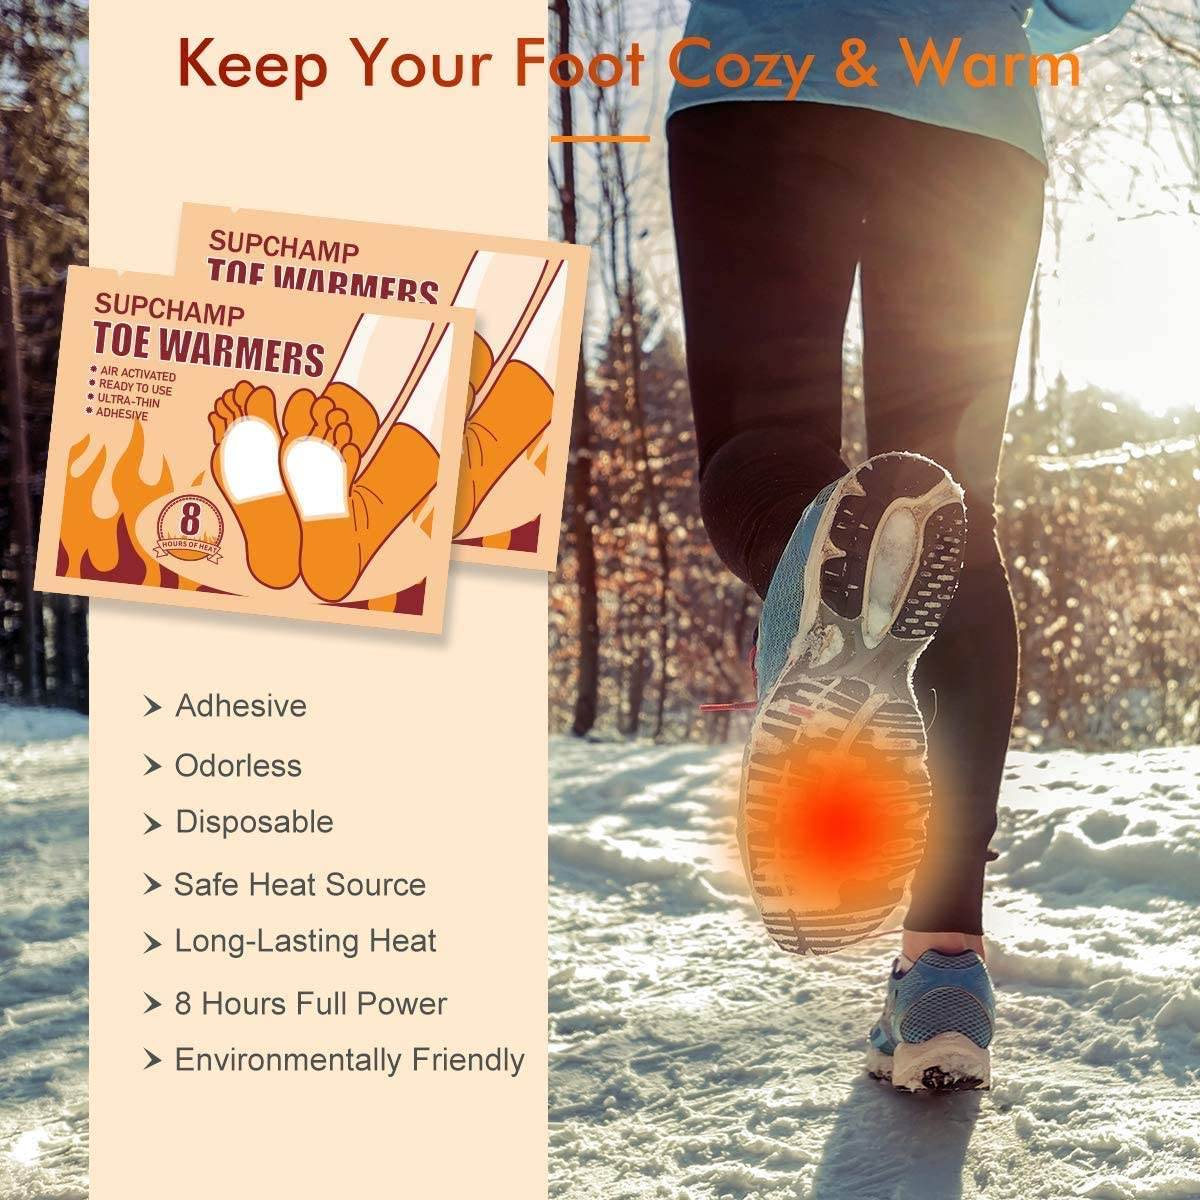 8 Hours Safe Heat 10 or 40 Pairs Disposable Adhesive Foot Warmers Air Activated Shoe Heat Pads for Winter Outdoor Activities Supchamp Toe Warmers